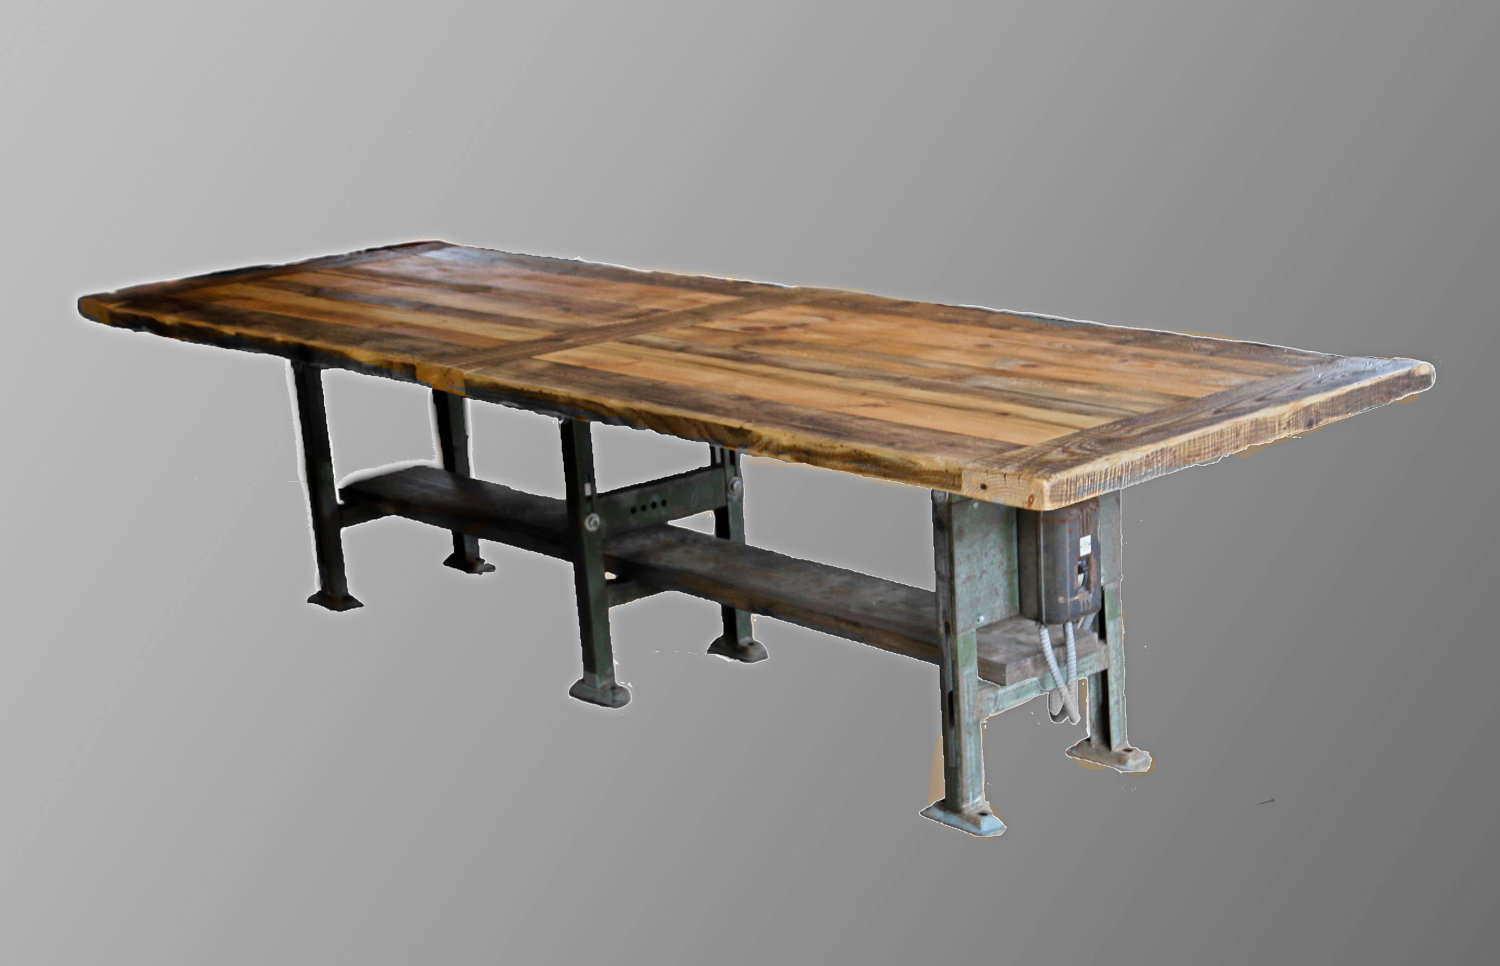 Best ideas about Dining Room Table Legs . Save or Pin The Types Dining Room Table Legs Now.